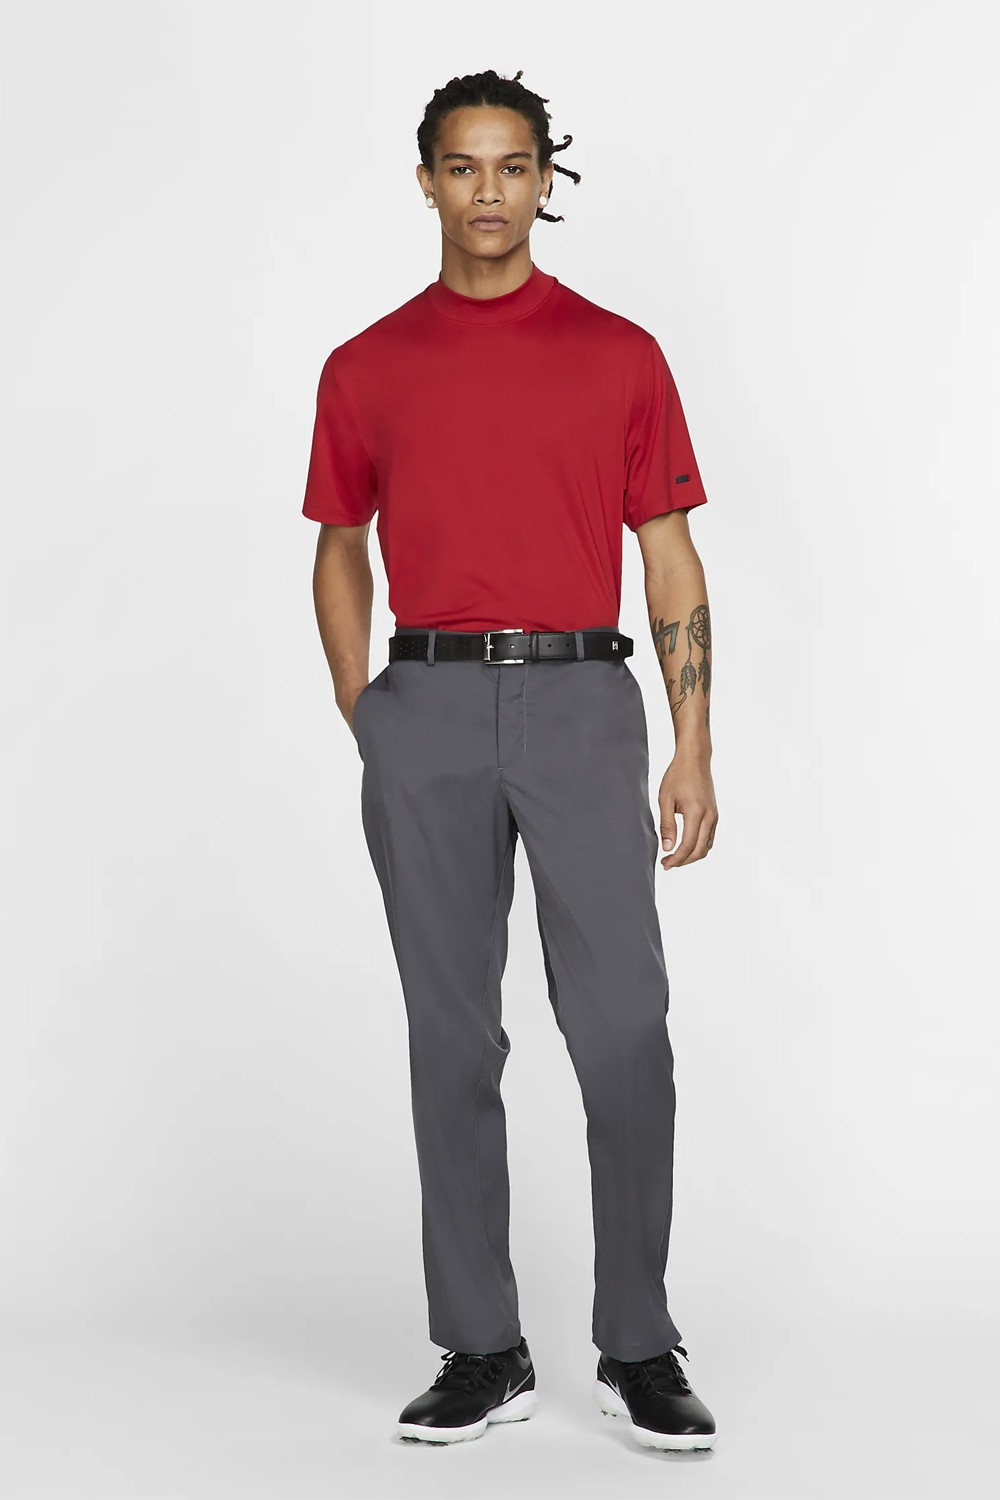 e94ffdf49 Dress Like a Champ in the Nike Golf 2019 Tiger Woods Collection